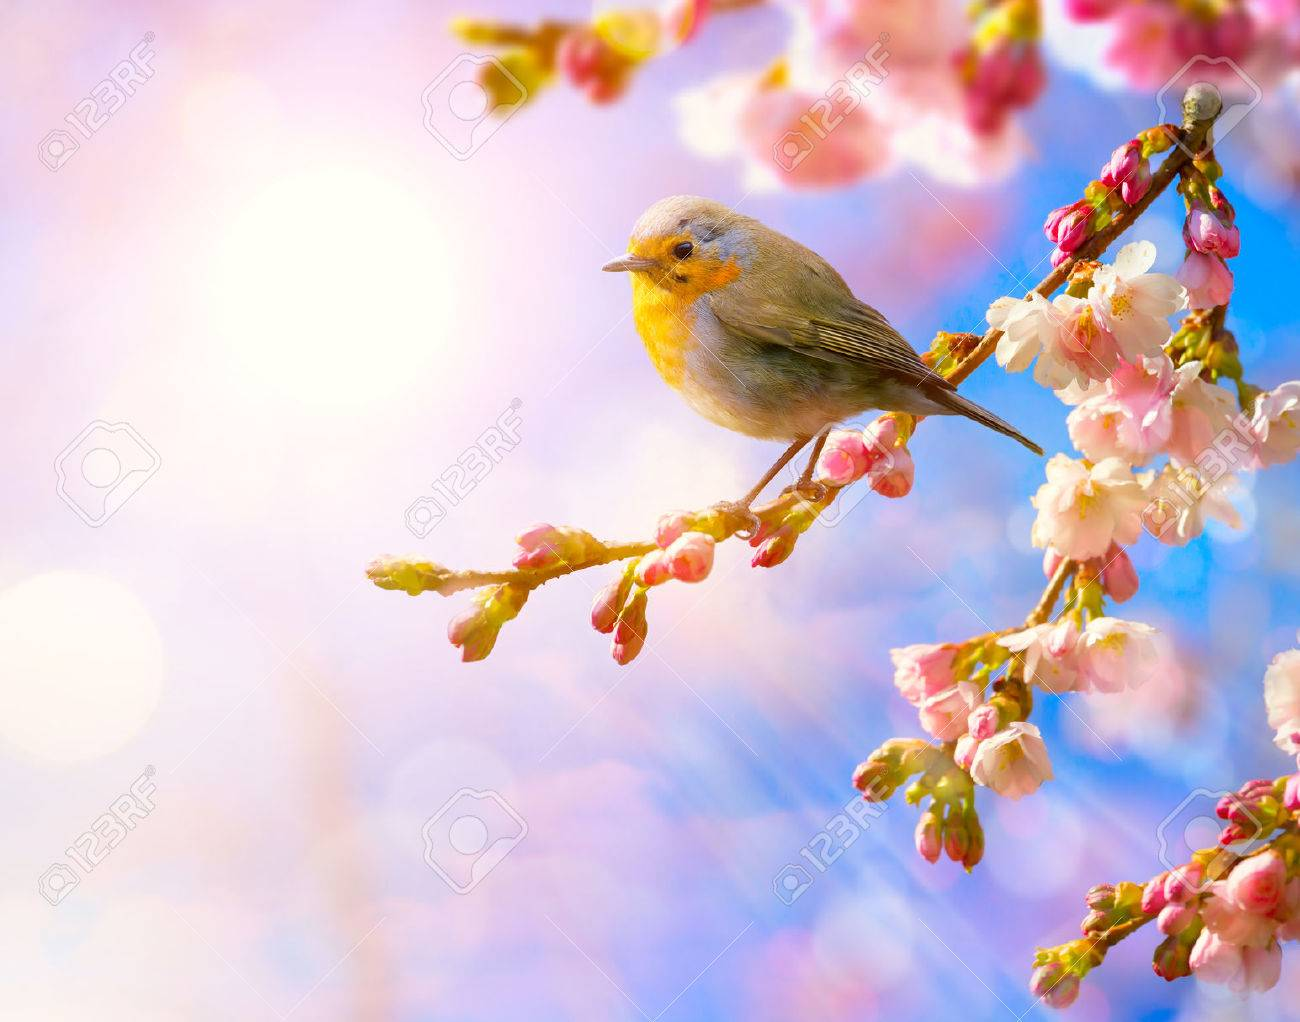 abstract spring landscape nature floral background with pink